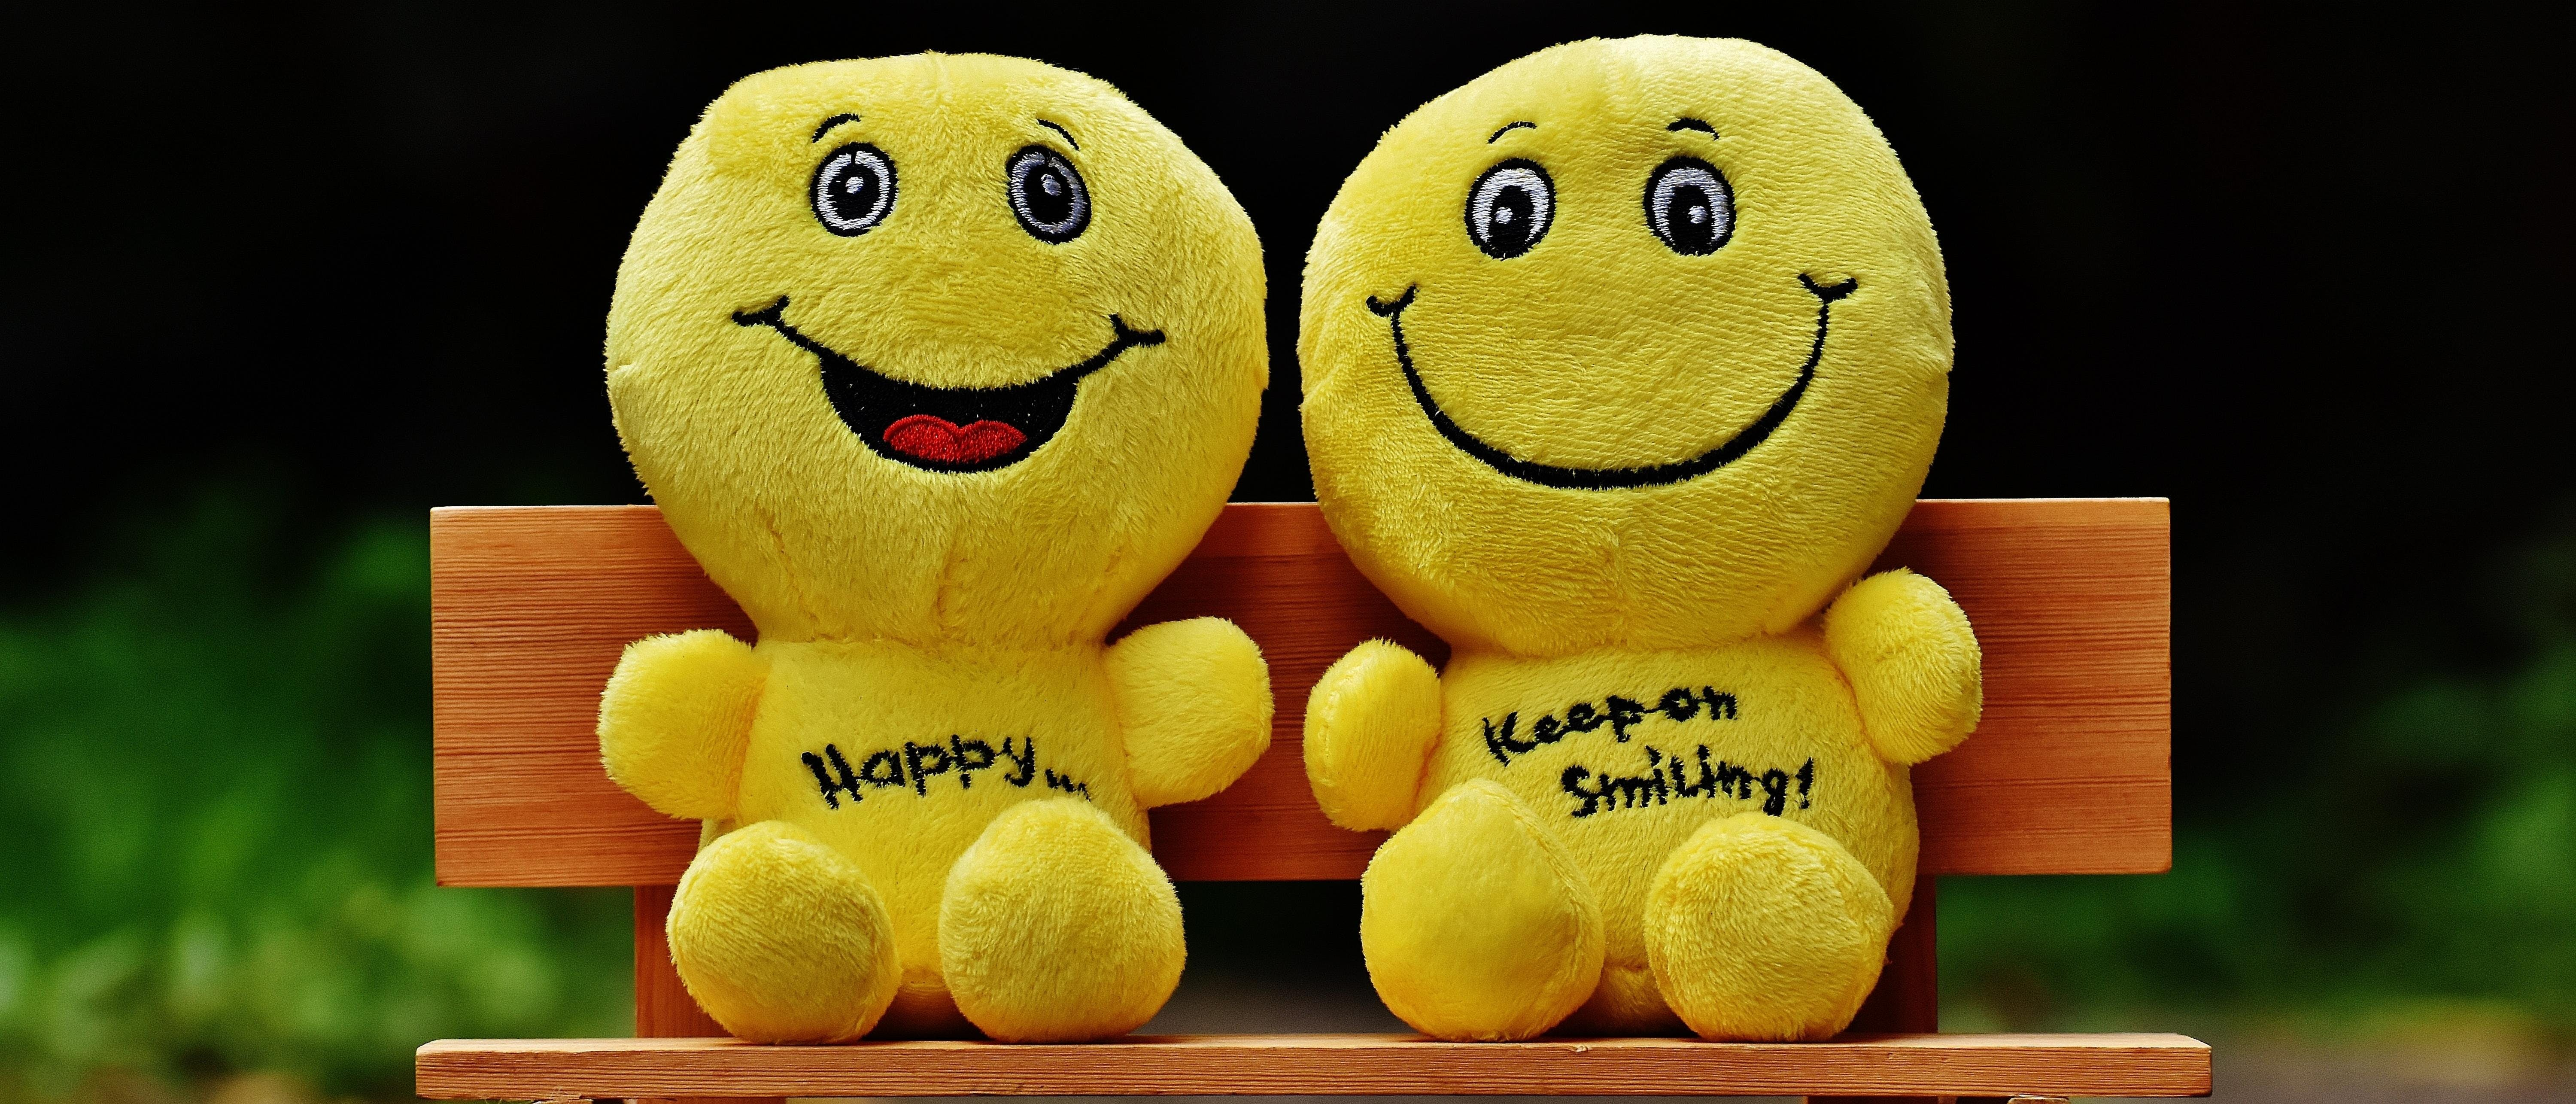 Keep on smiling!